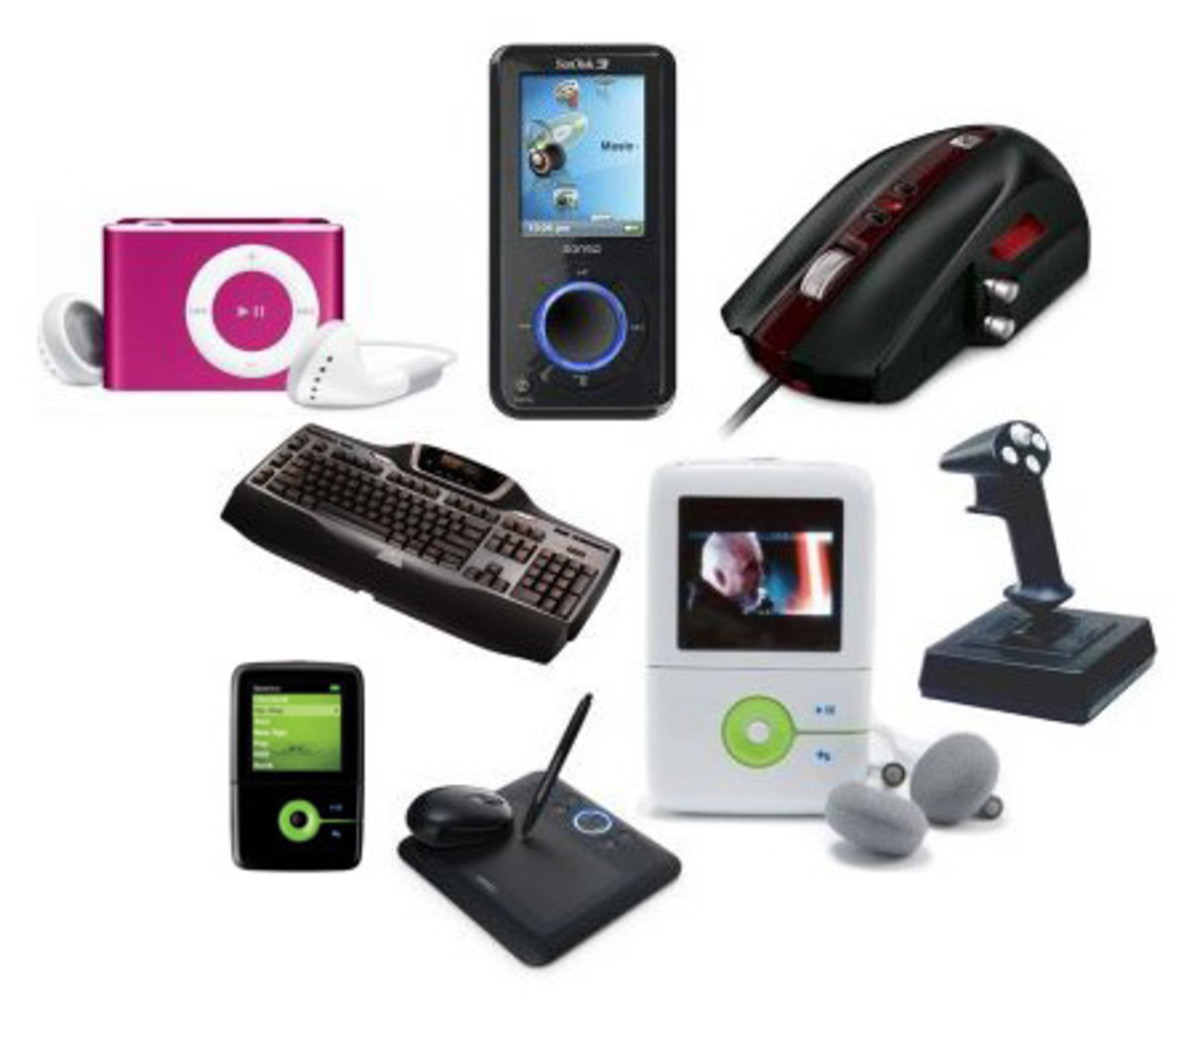 Media Gizmos in service of the Mass media consumer and user: meaning- one person is hooked up in all these gizmos